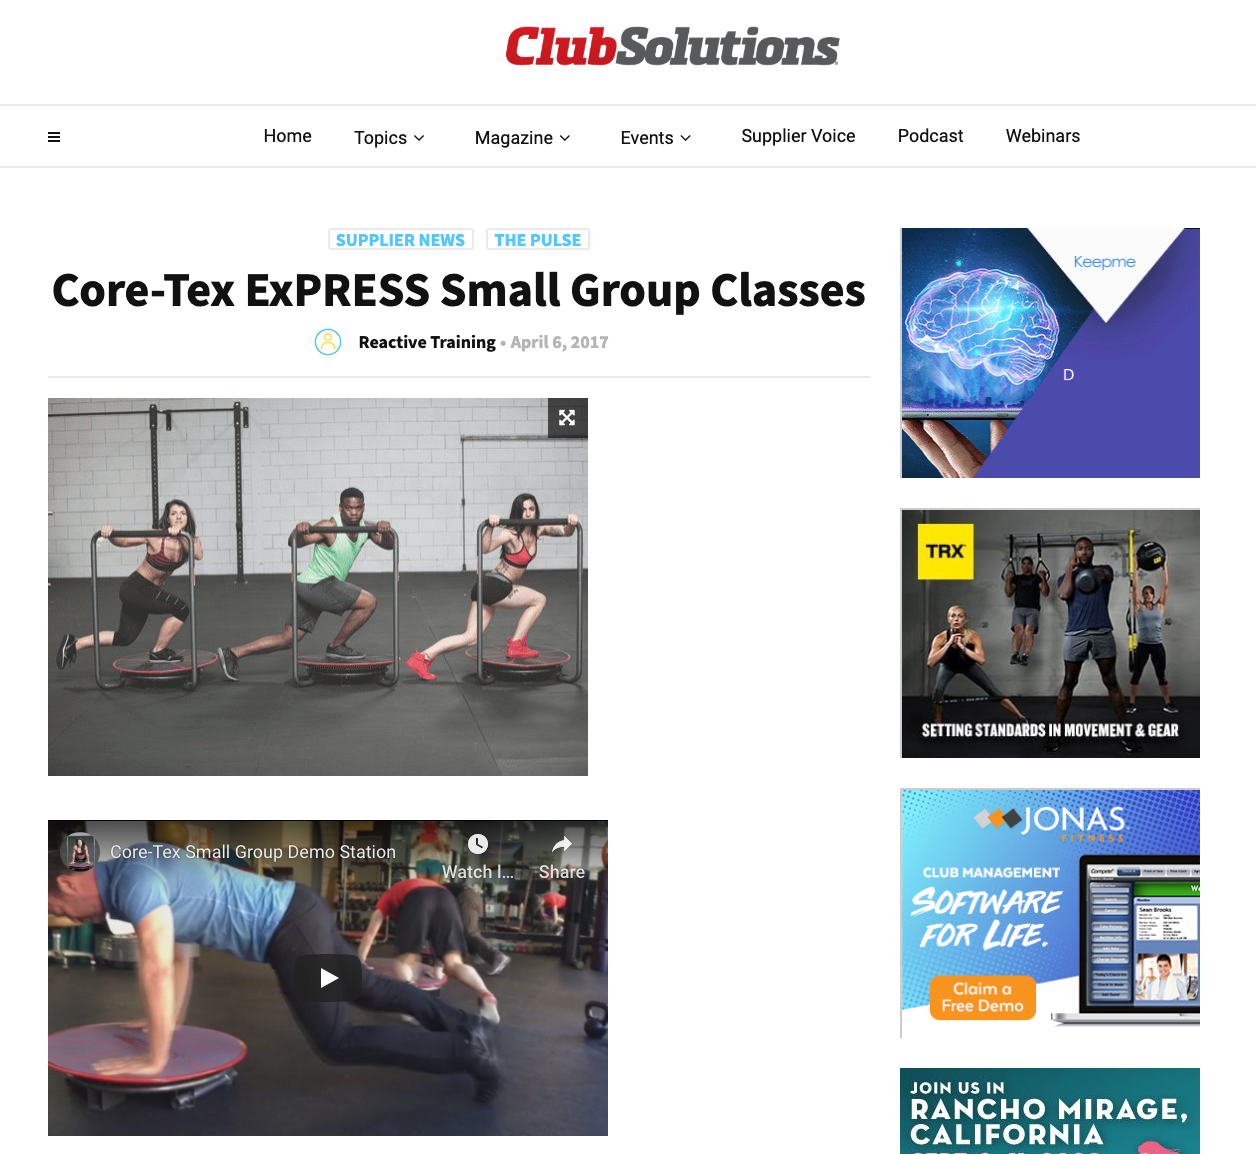 CLUB SLOUTIONS MAGAZINE, APRIL 2017: Core-Tex ExPRESS Small Group Classes